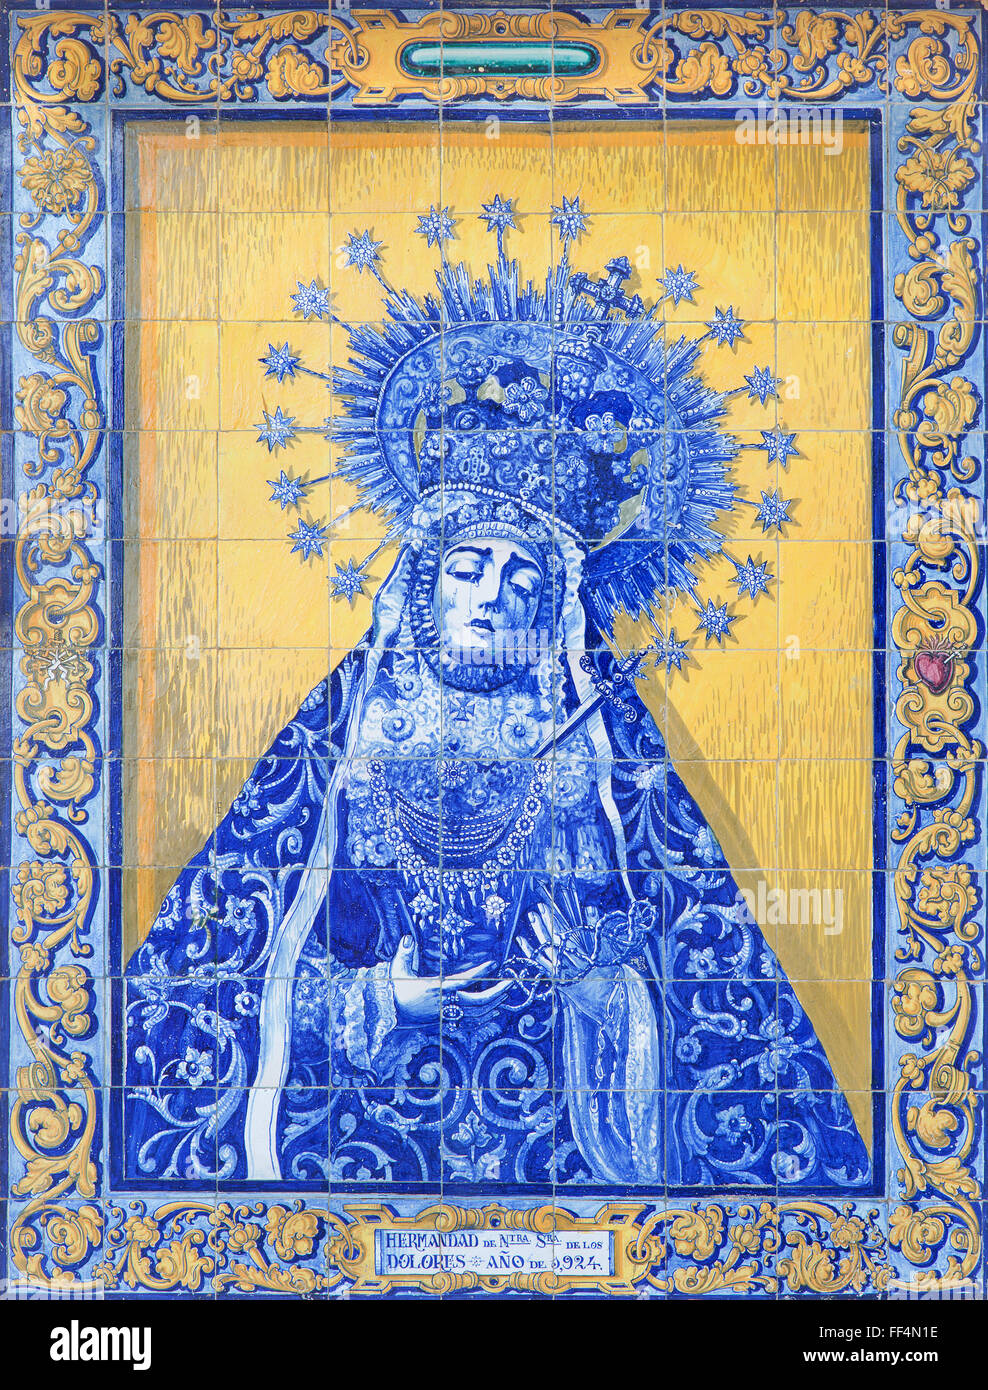 CORDOBA, SPAIN - MAY 27, 2015: The ceramic tiled, cried Madonna by J. Rodroguez Ritton on the Cueste del Bailio - Stock Image